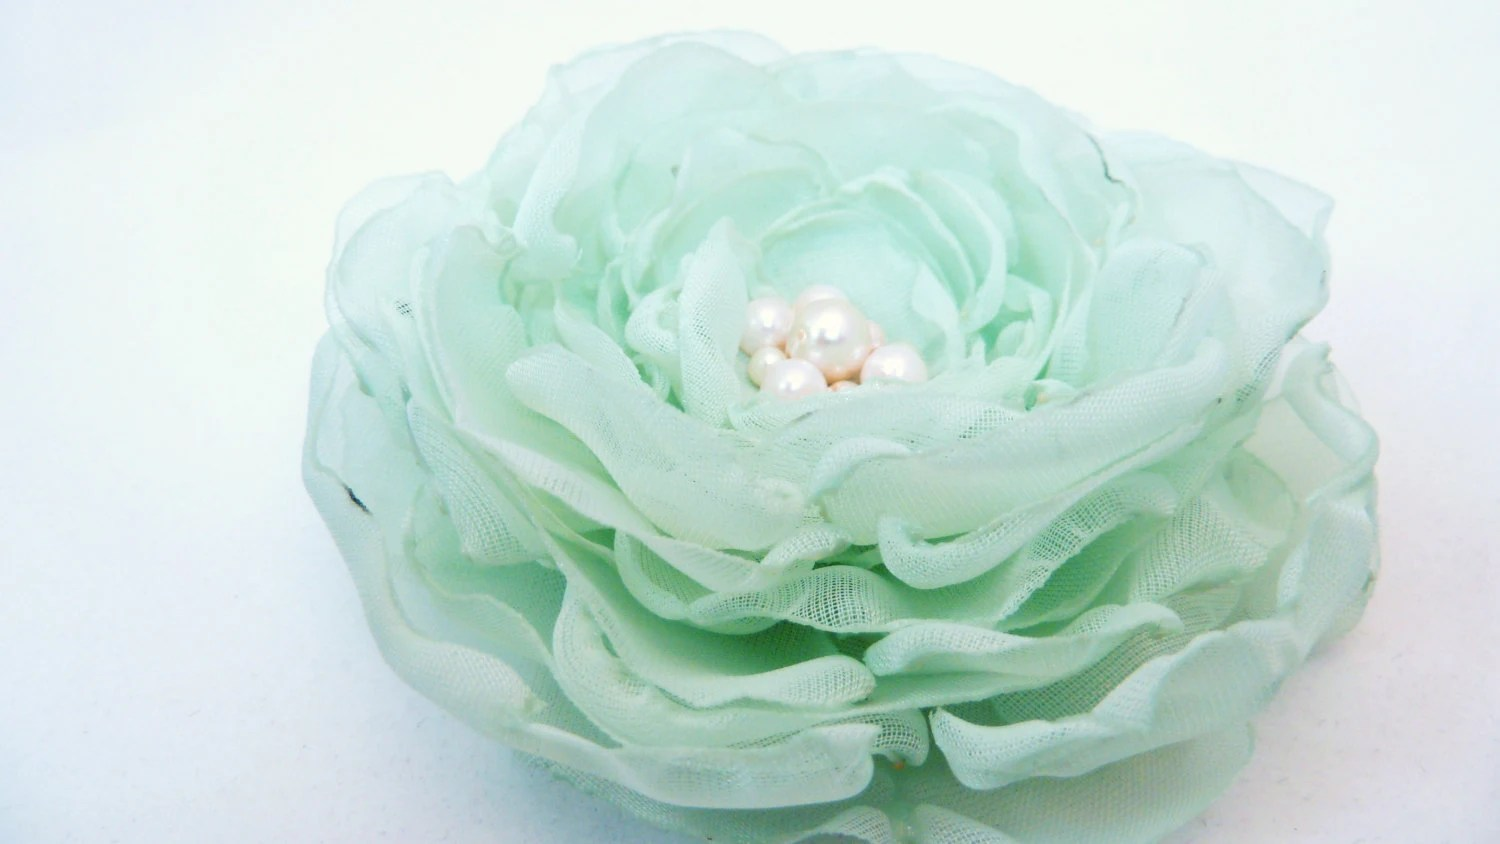 Soft and Romantic Mint Green, Seafoam, Pistachio Chiffon Flower Brooch, Hair clip or Applique, Spring or Summer Bridal Party, Easter, Prom, - BananaSueBoutique